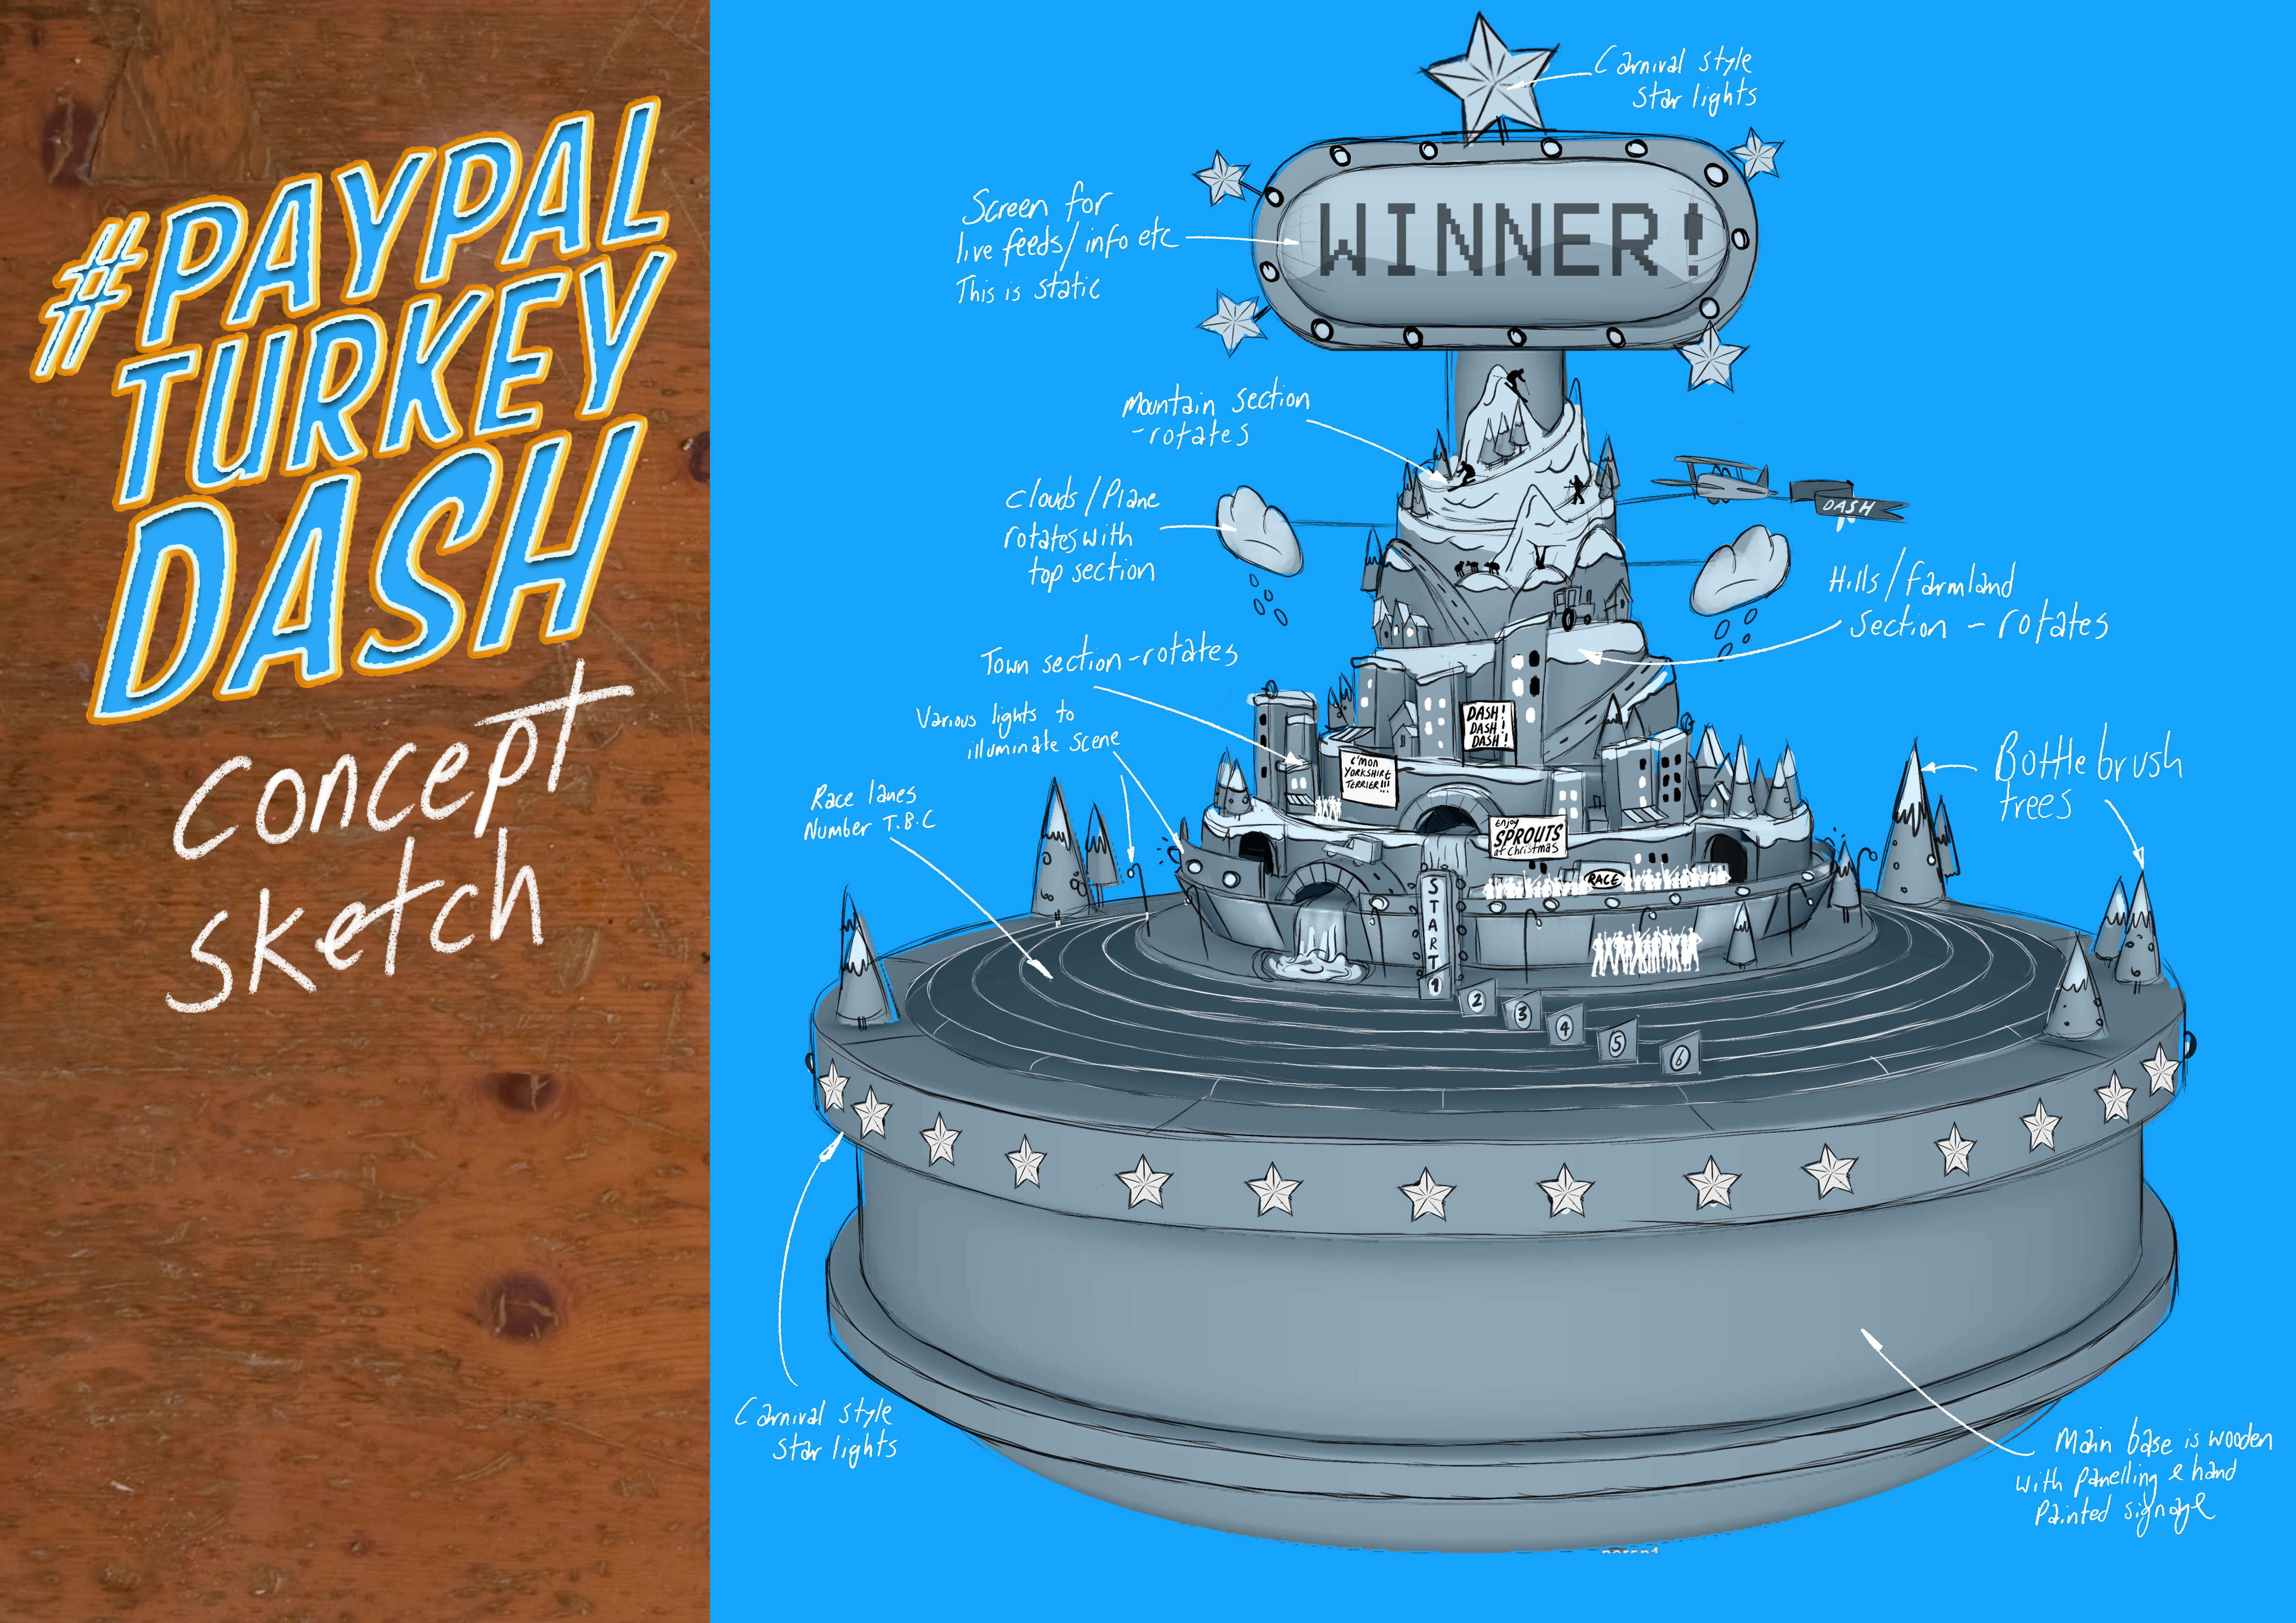 Paypal Turkey Dash concept art